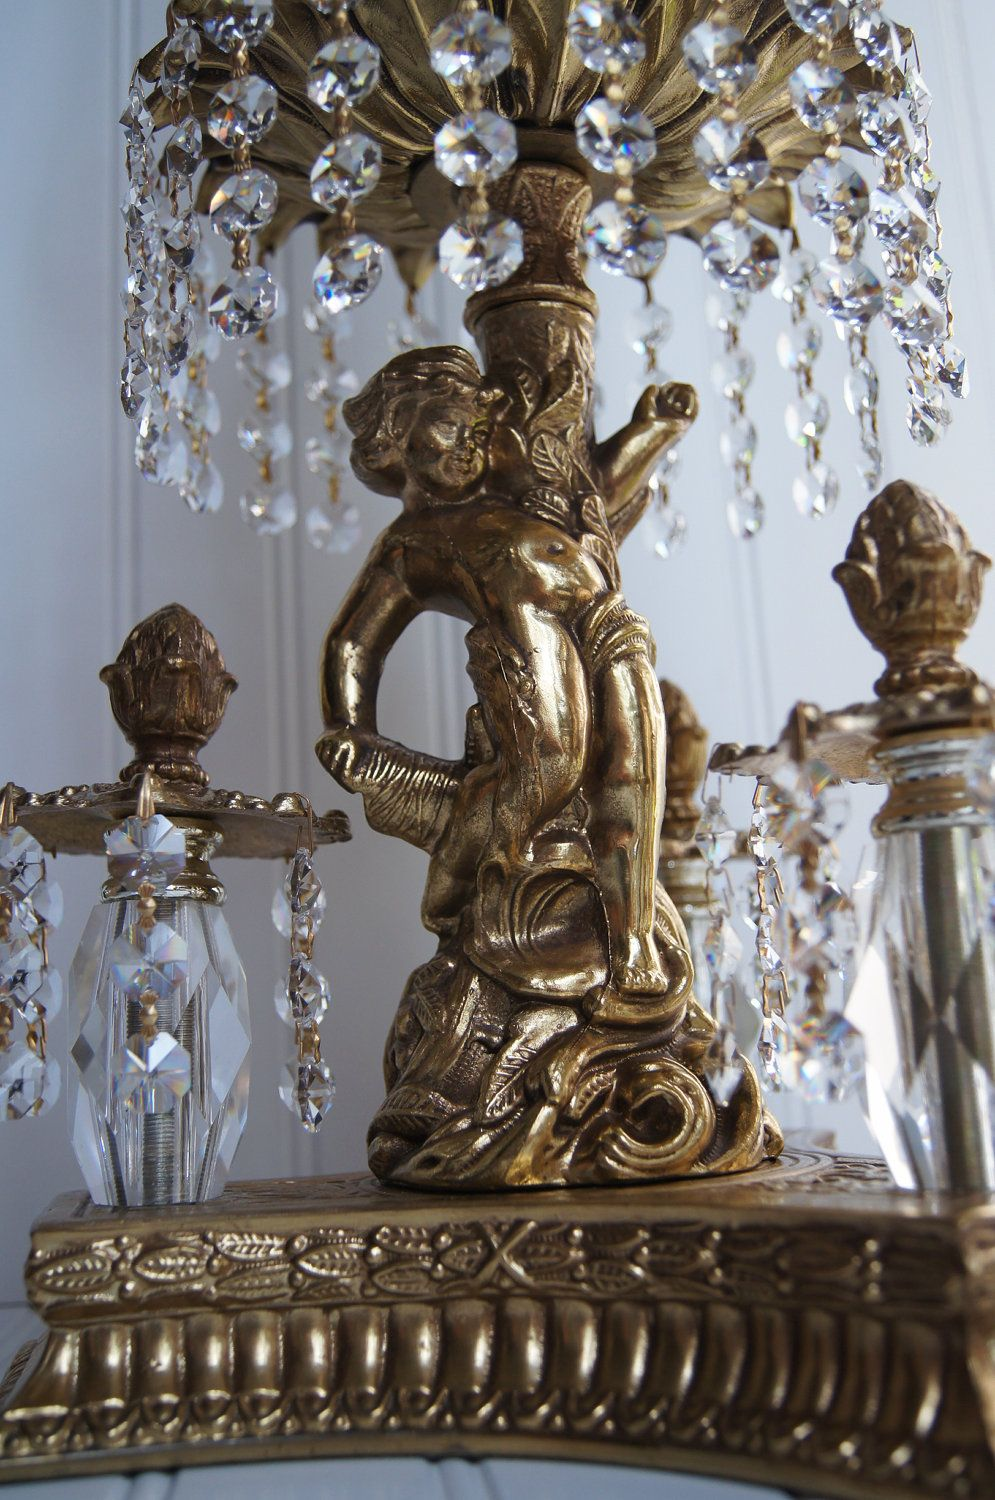 Vintage crystal table lamp - Extremely Beautiful Unique Vintage Heavy Crystal Lamp With Gold Cherub Figure